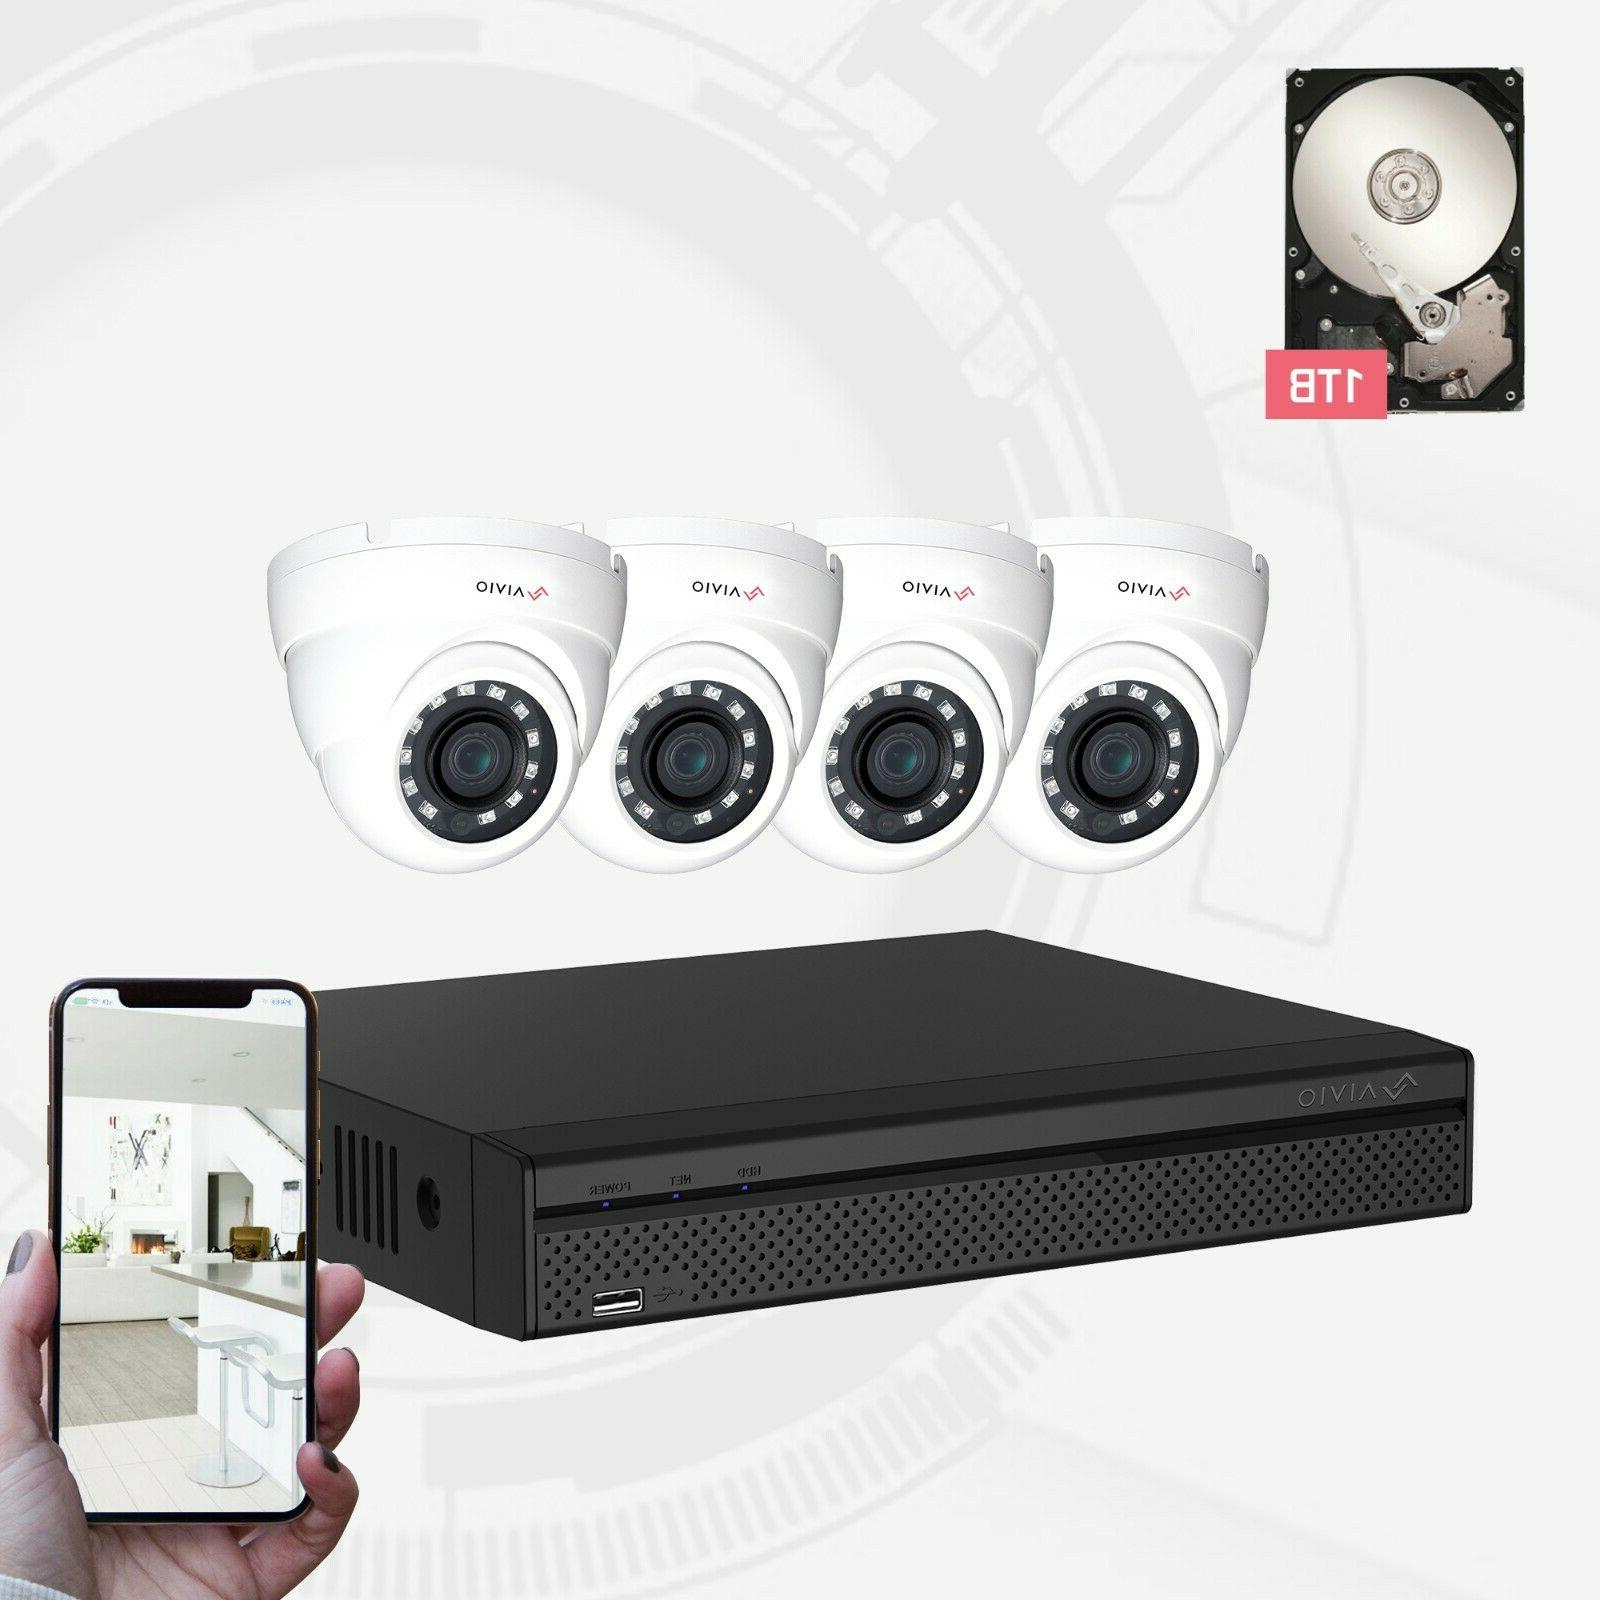 oem aivio 8ch wired security surveillance system